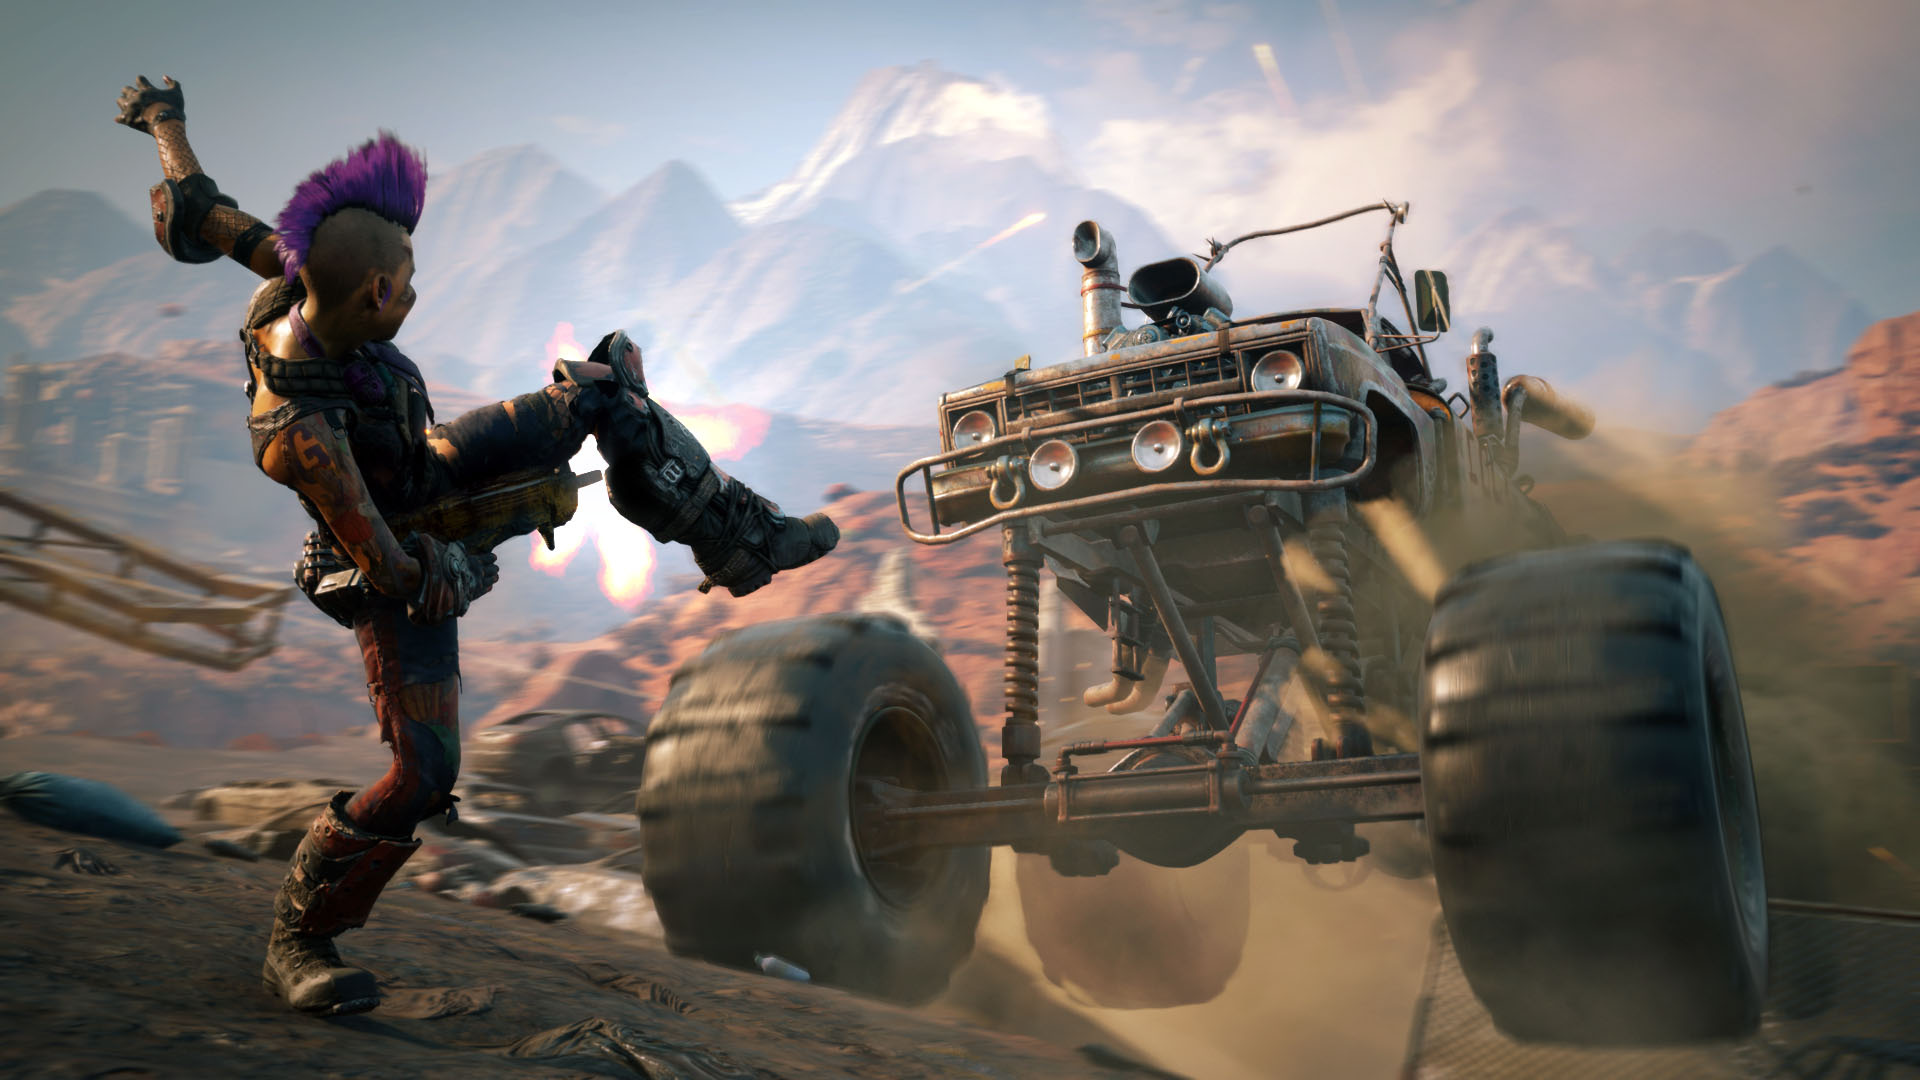 RAGE 2 Will Make an Appearance at The Game Awards 2018 with New Trailer